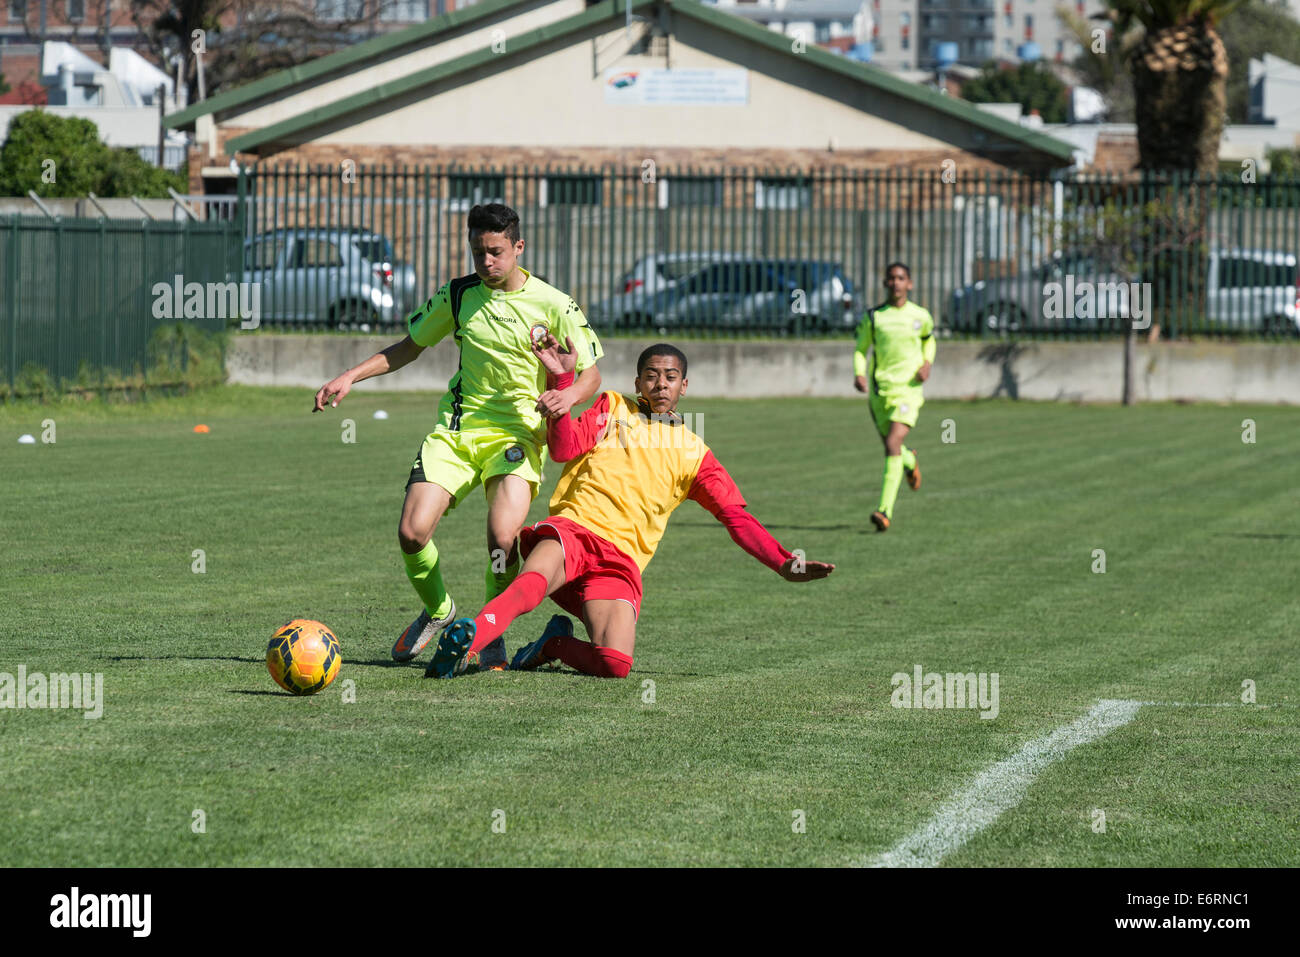 Striker and defender, football match of Under 15 youth teams, Cape Town, South Africa - Stock Image